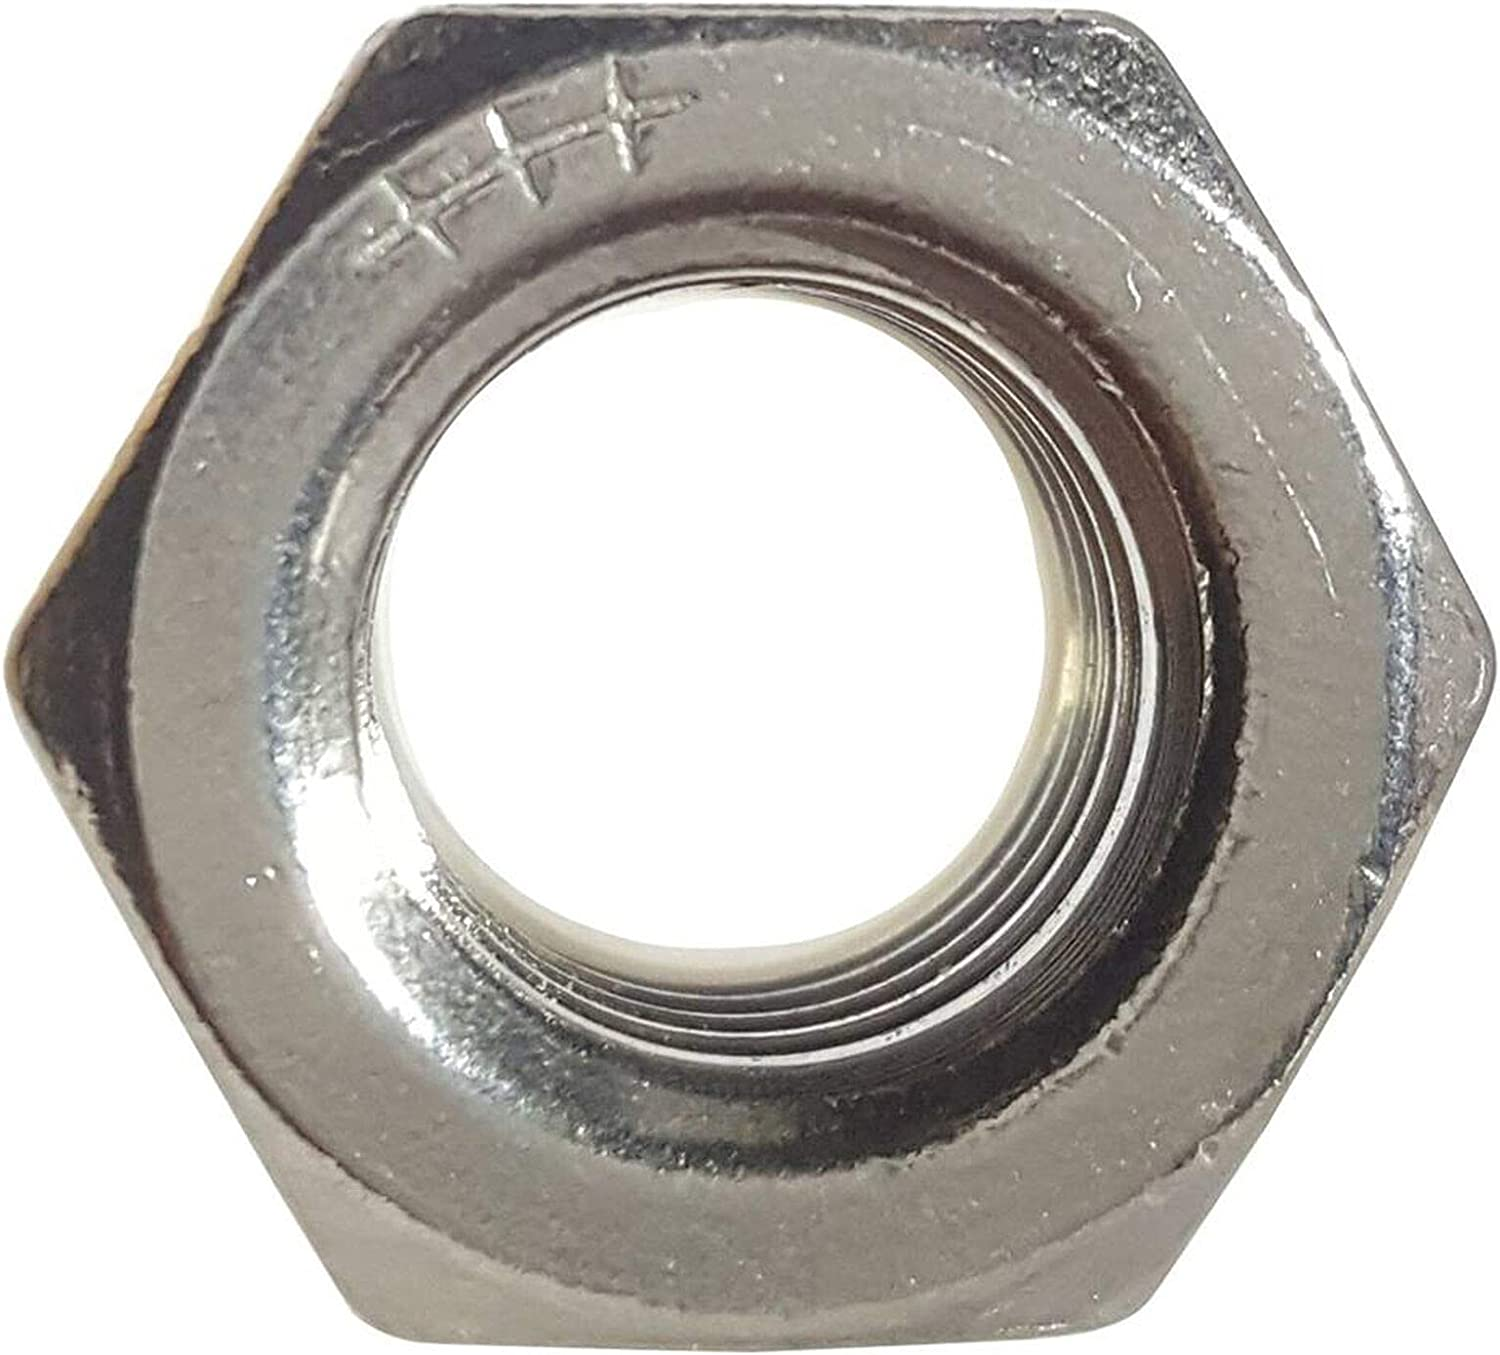 4-40 Nylon Lock Nut Stainless Steel 18-8 Elastic Insert Hex Nuts Qty 5000